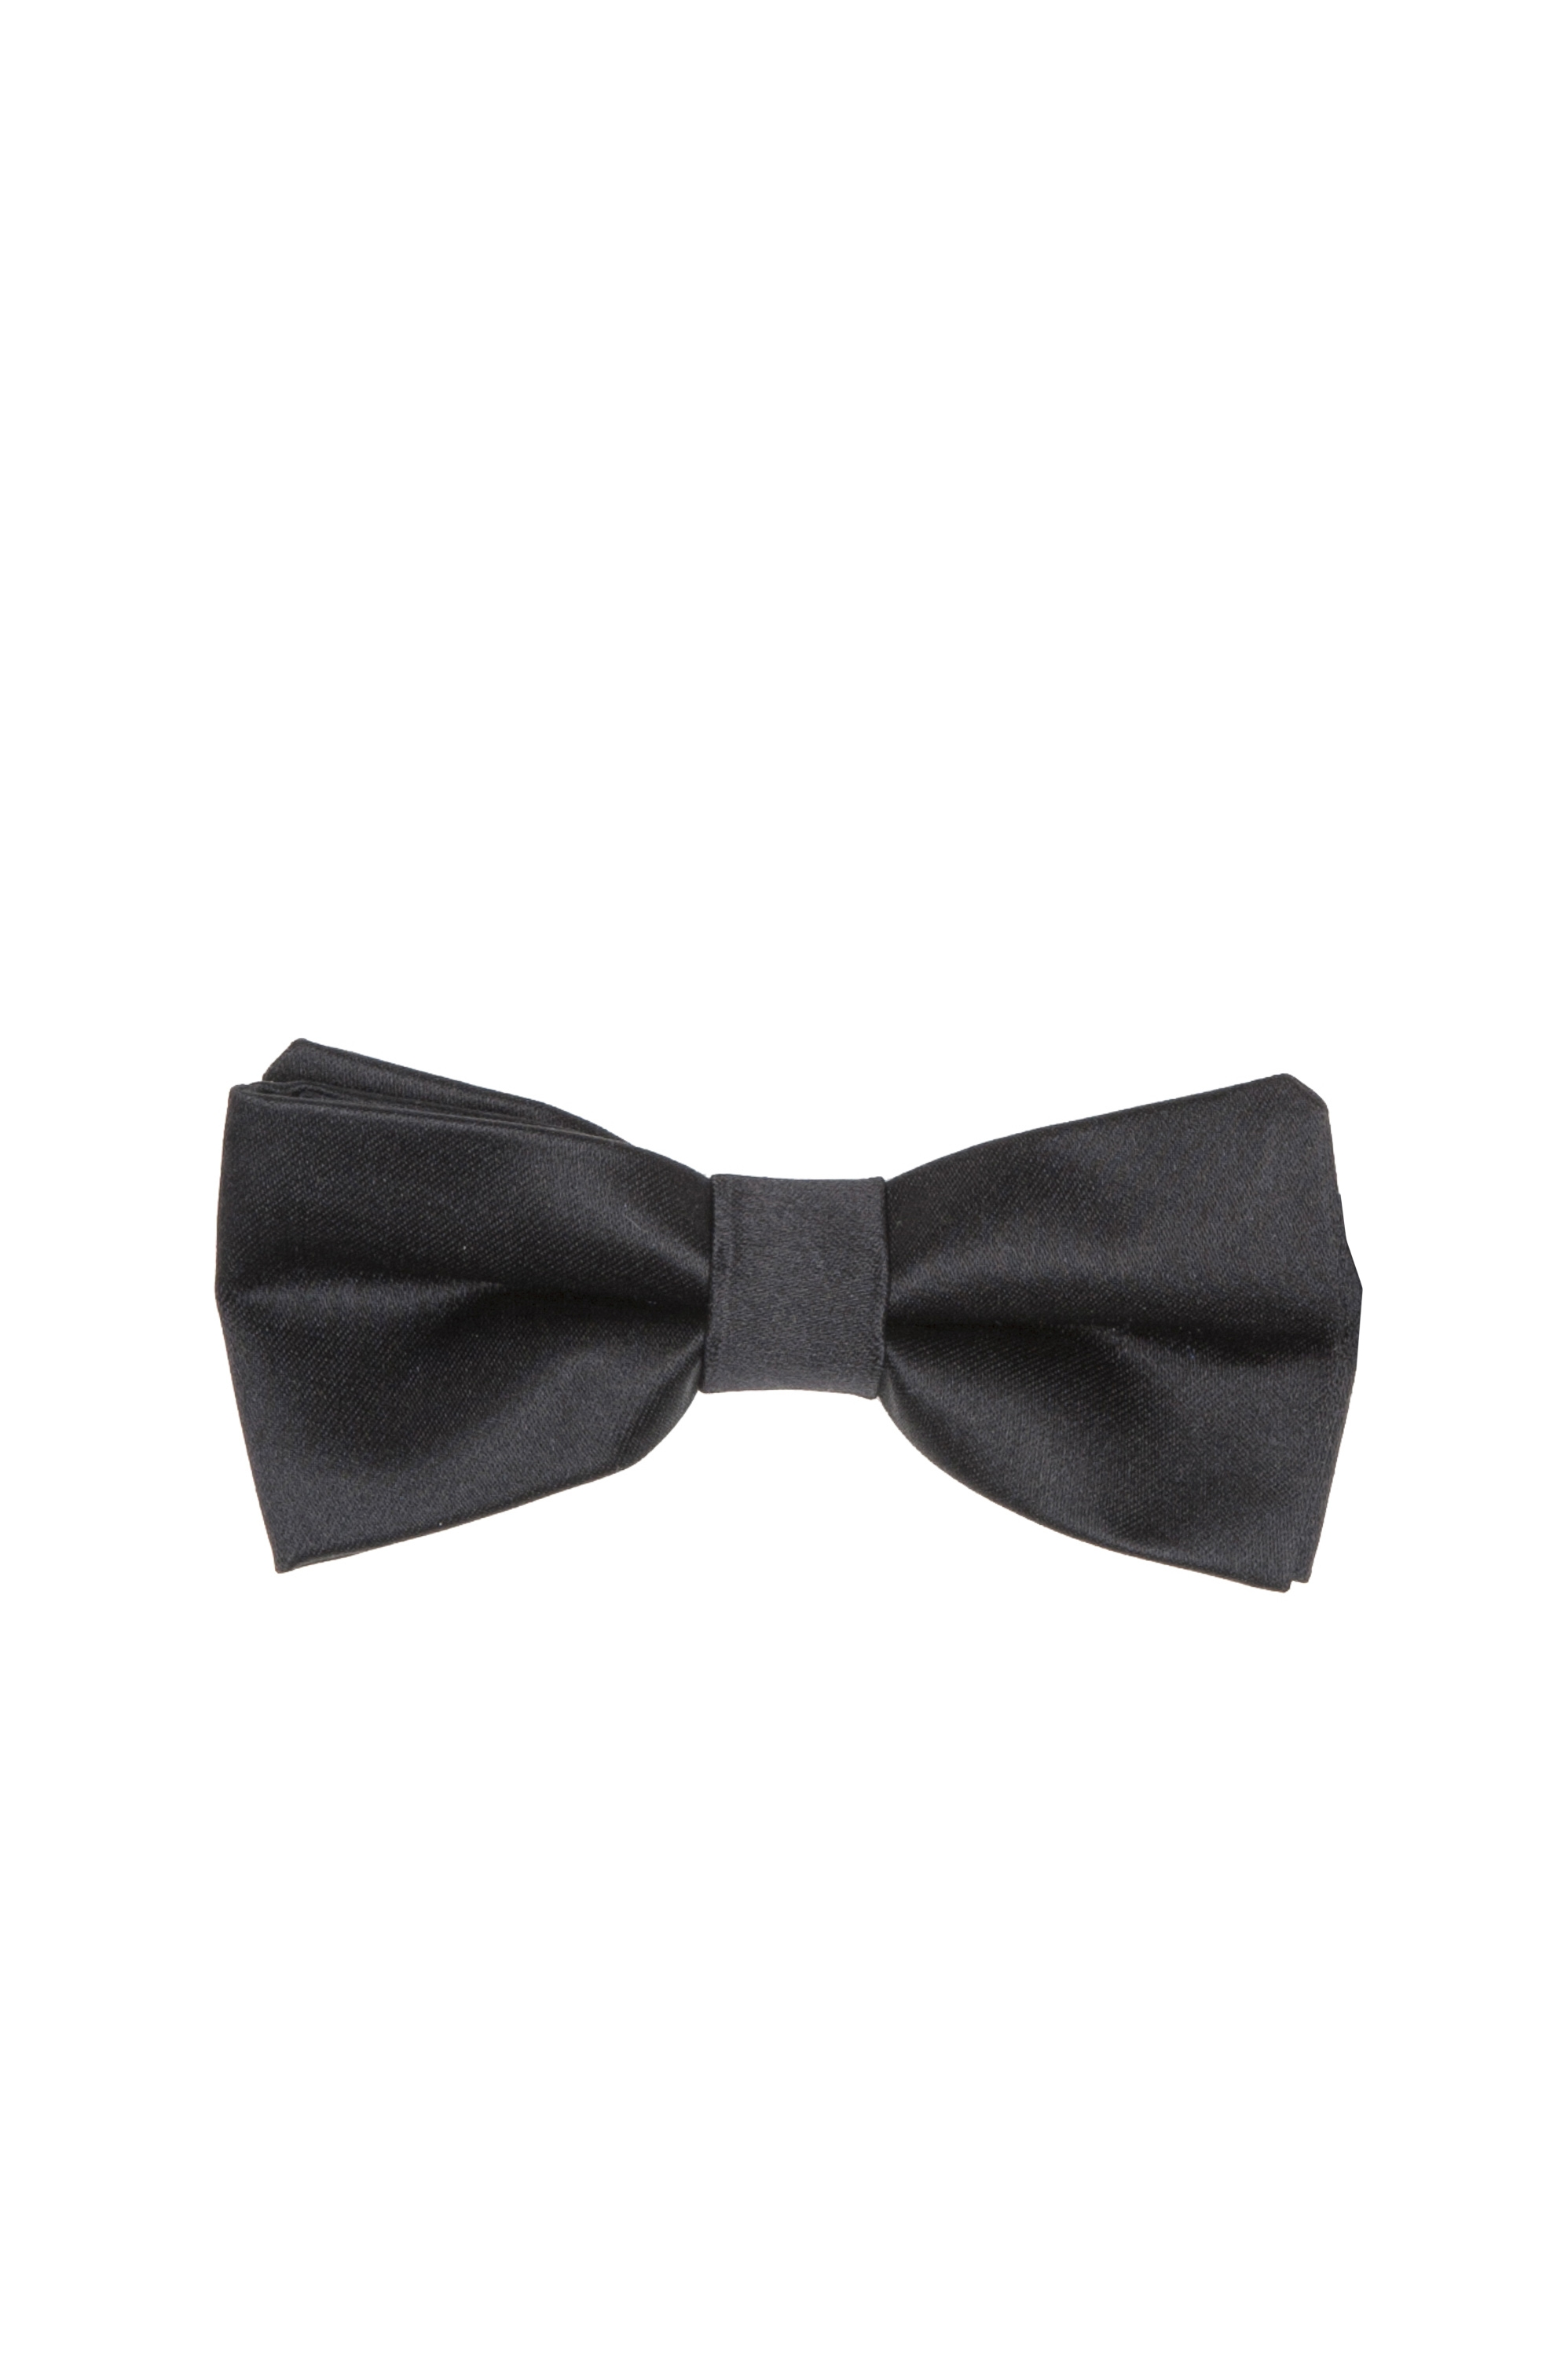 SBU 01030_19AW Classic ready-tied bow tie in black silk satin 01